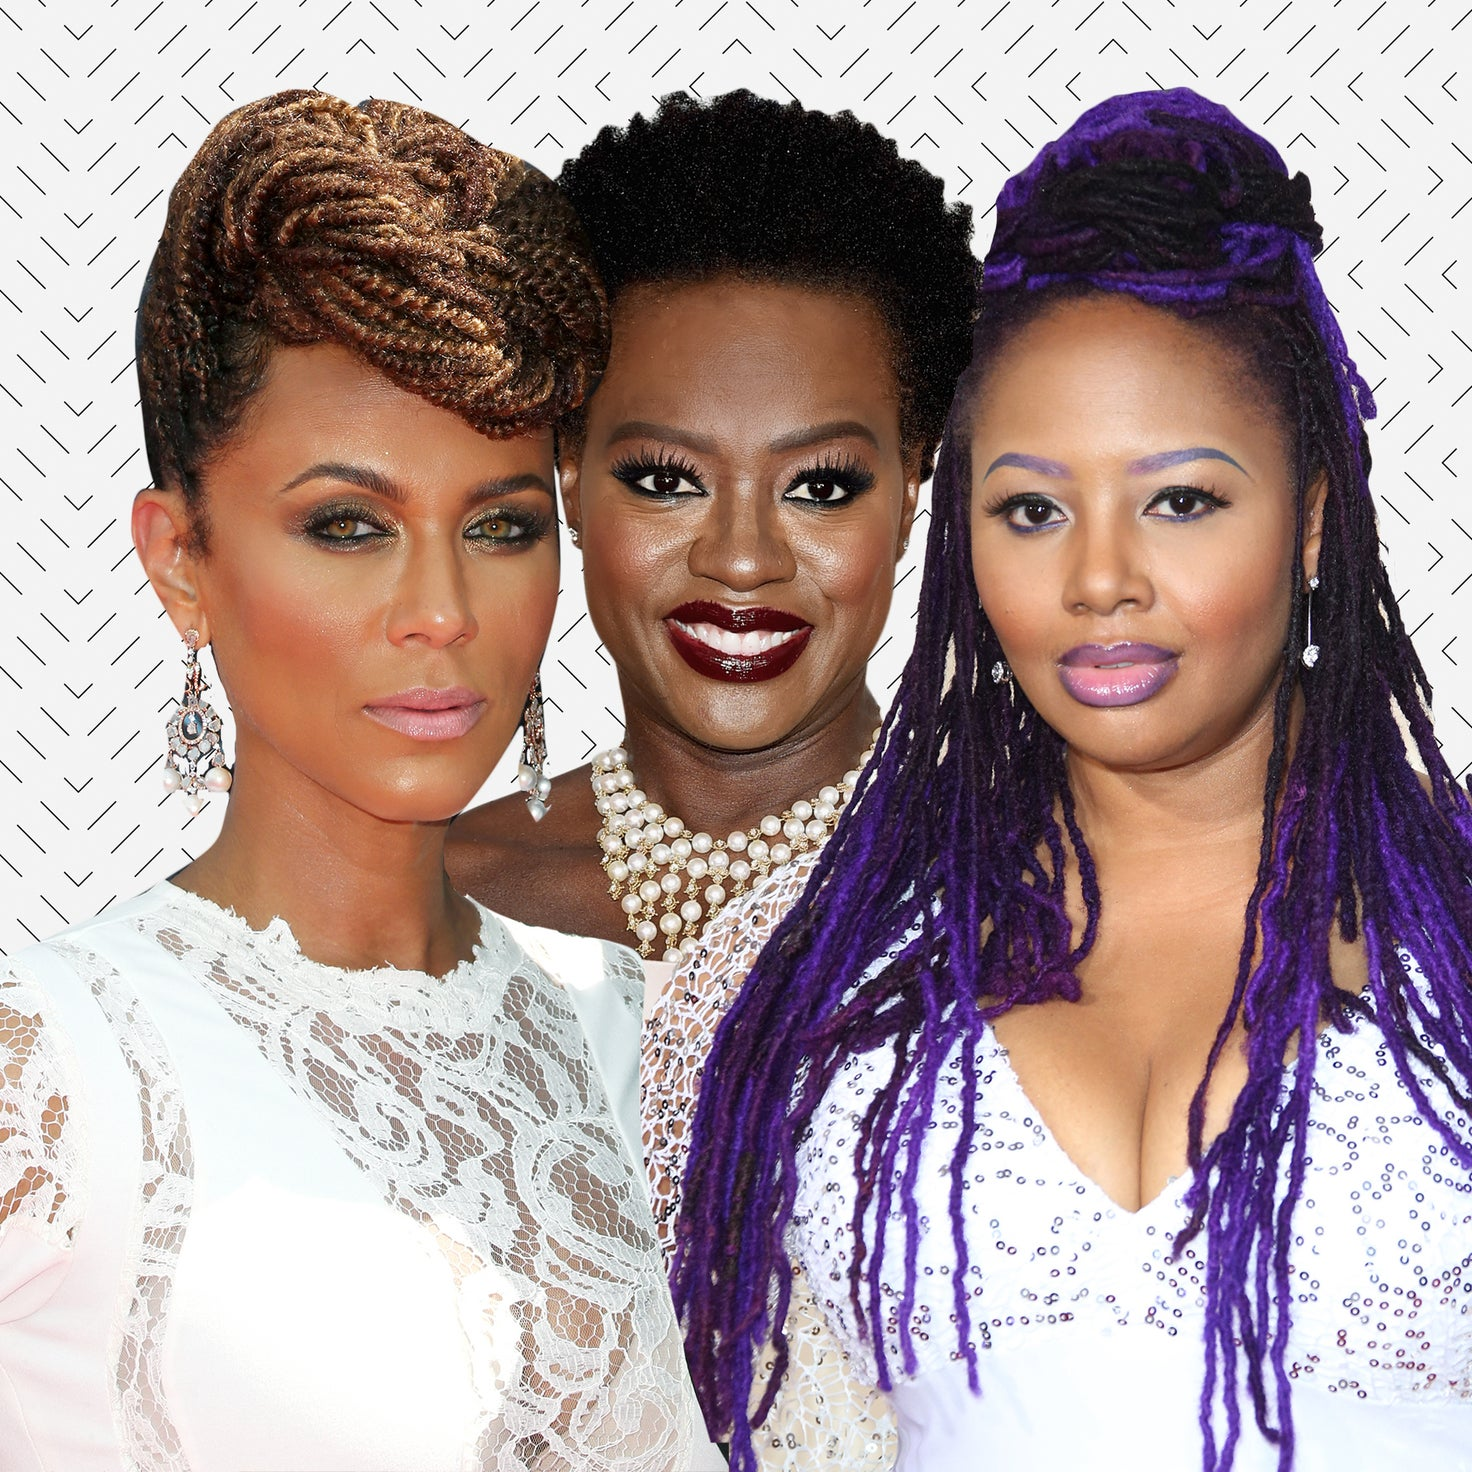 11 Celebs on Choosing to Embrace Their Natural Hair Textures